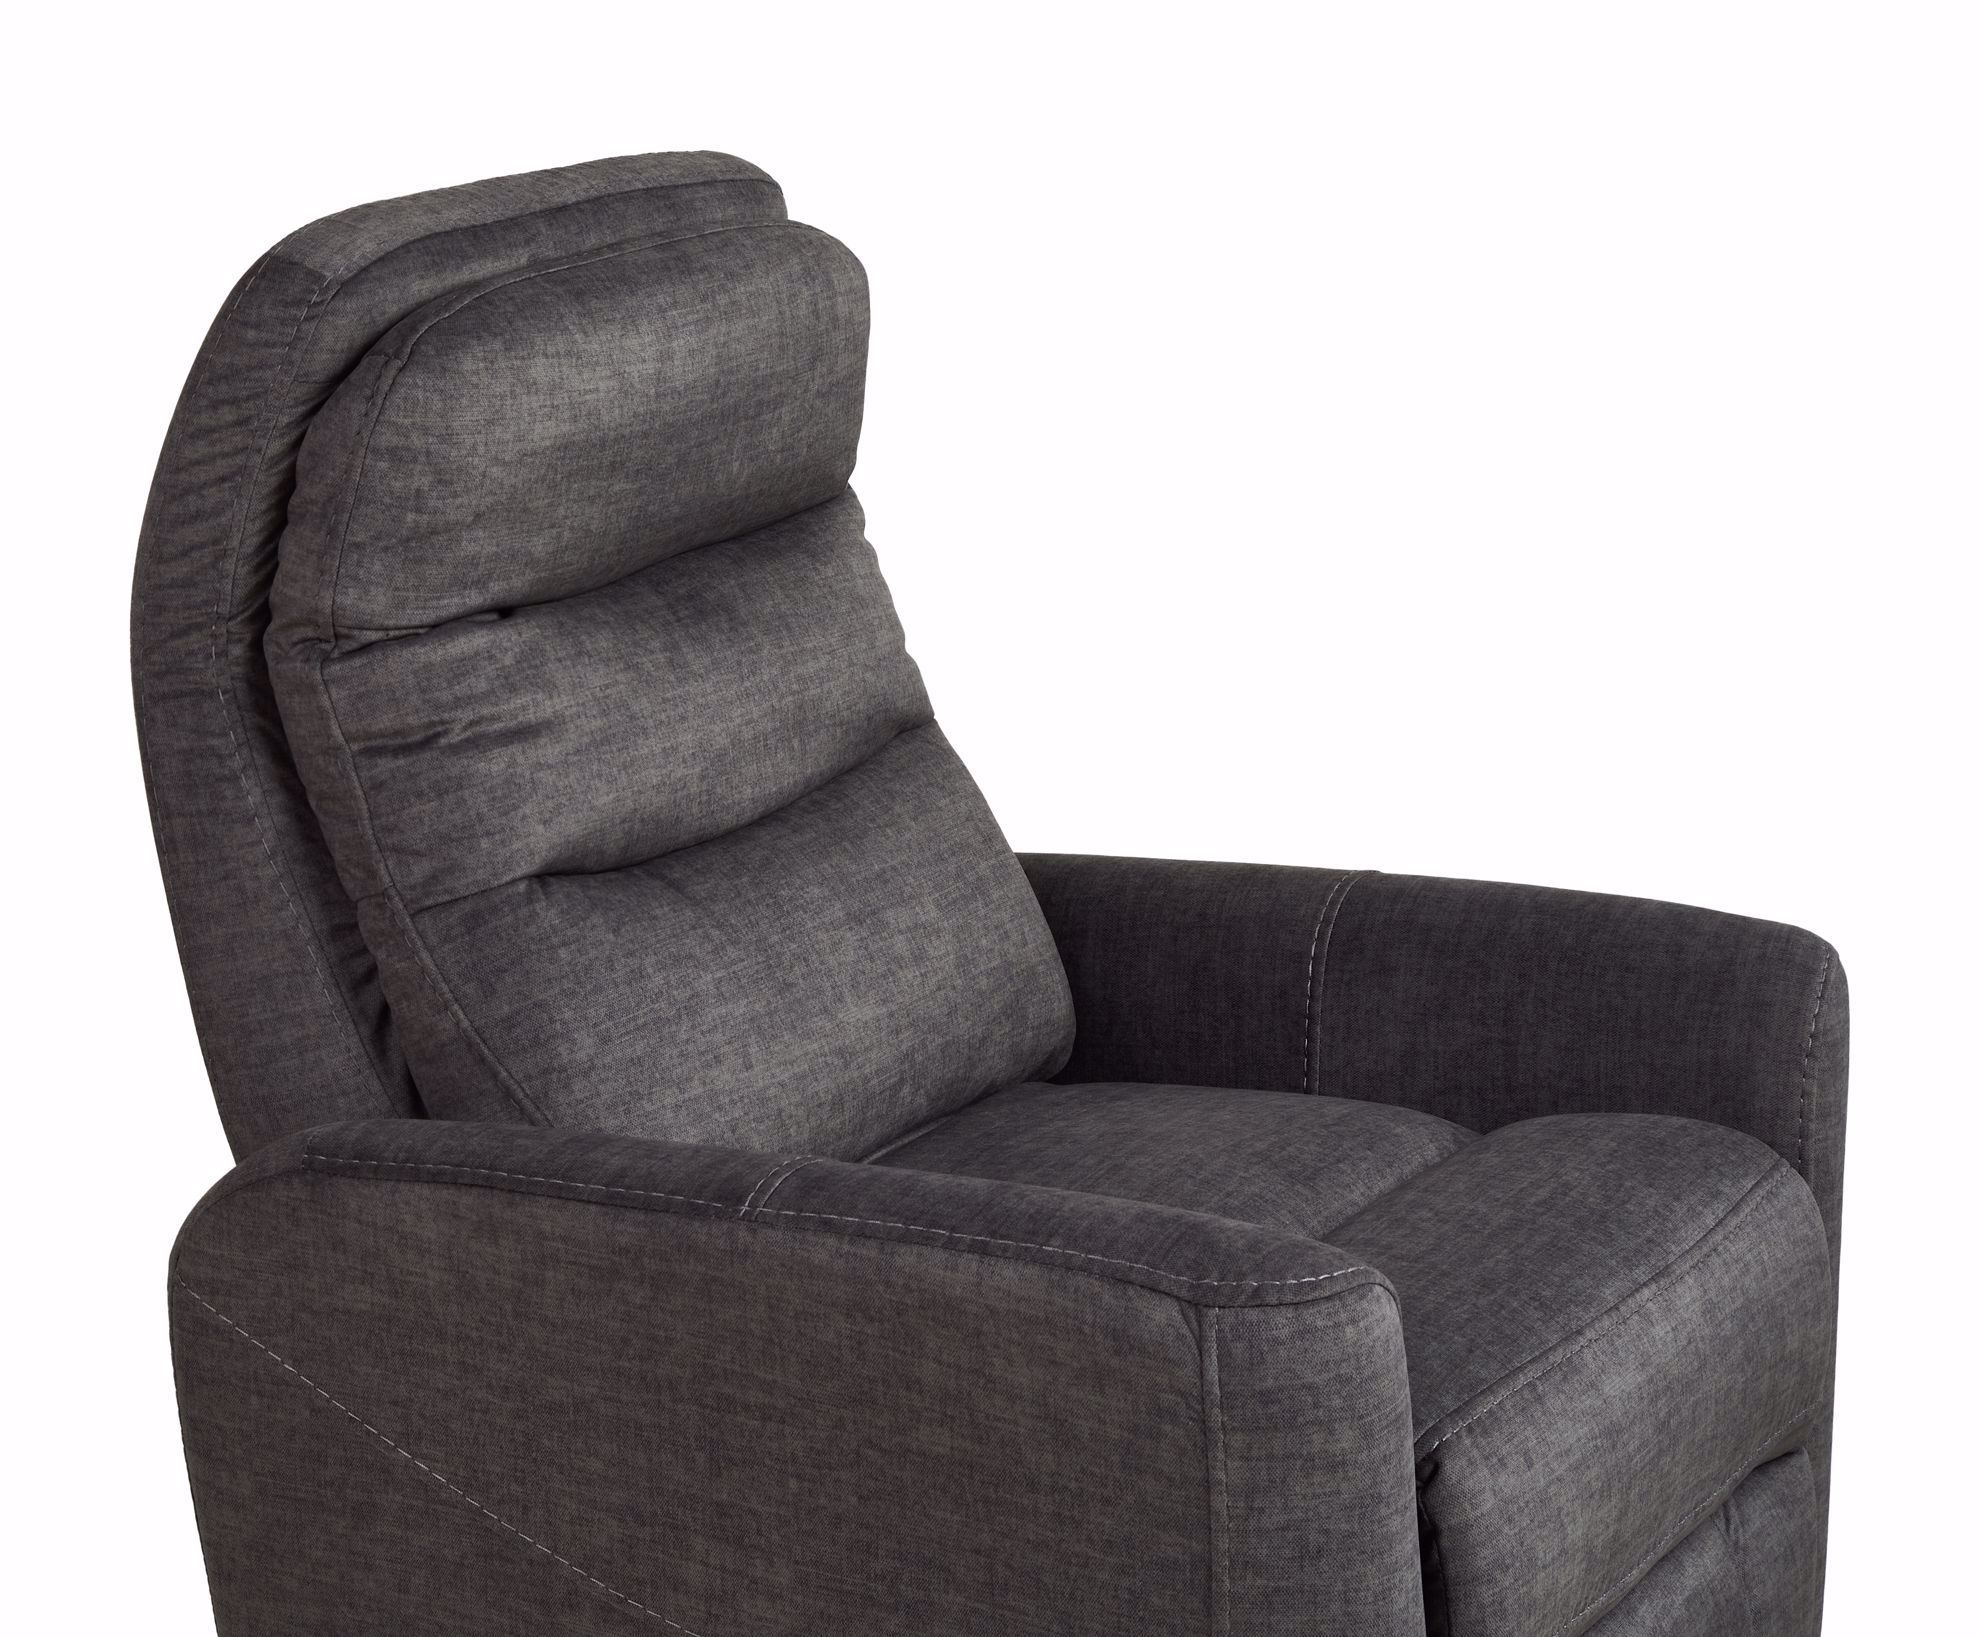 Picture of Stormy Charcoal Swivel Gliding Recliner